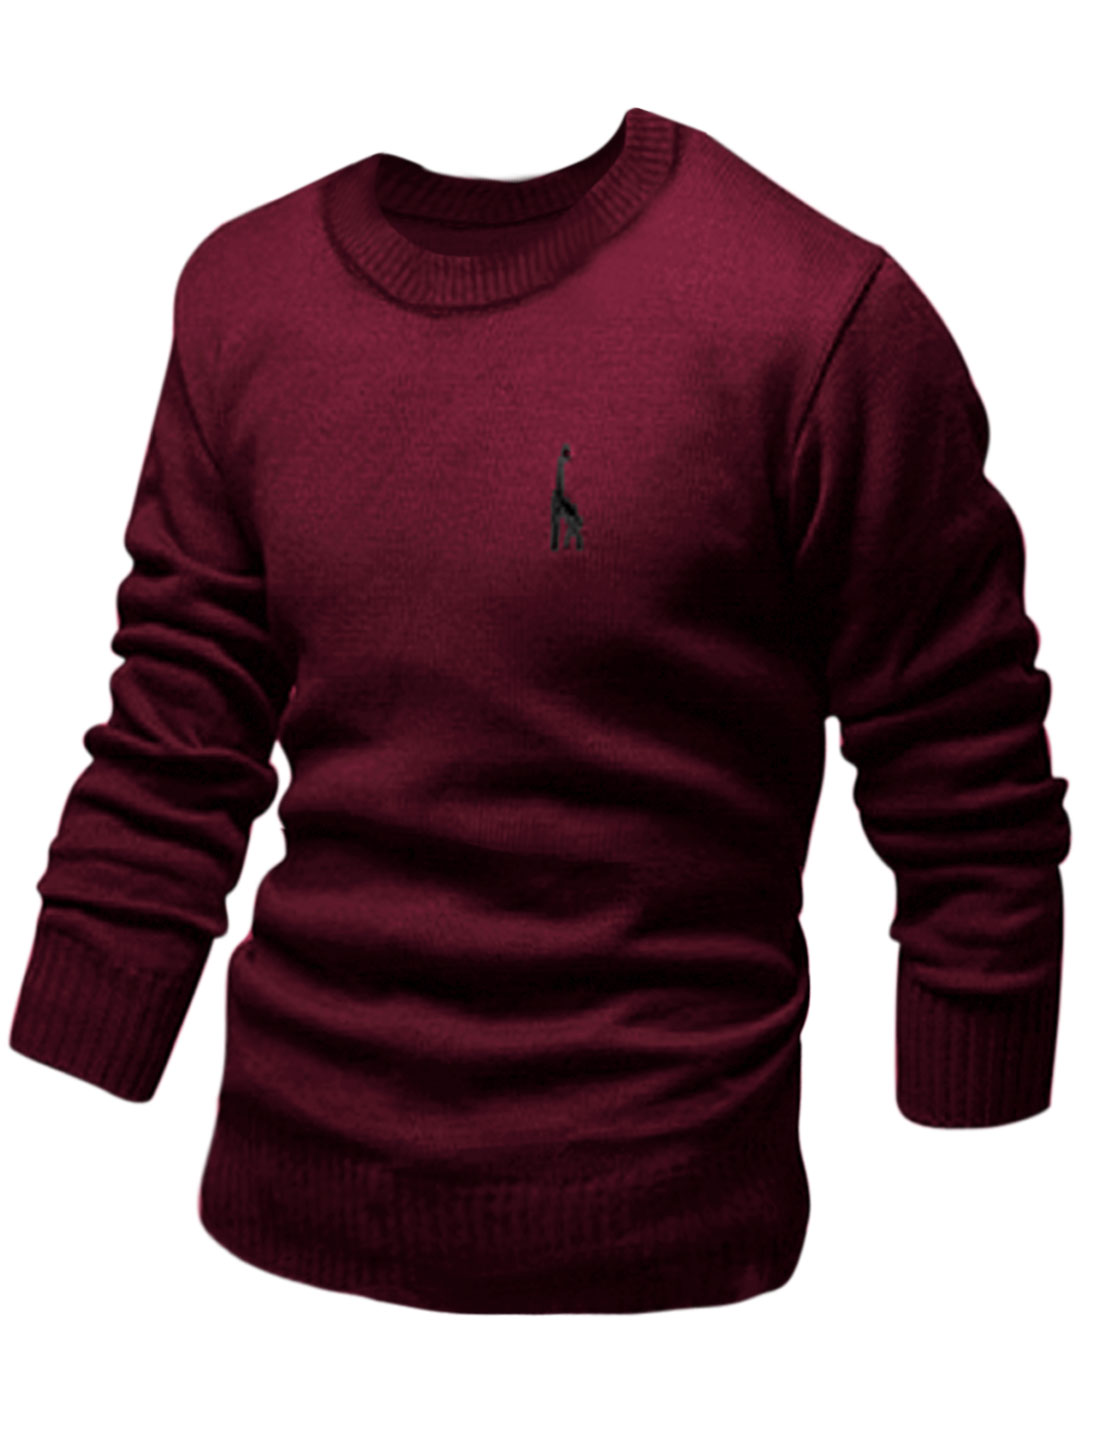 Men Slipover Embroidery Details Casual Knit Shirt Burgundy M